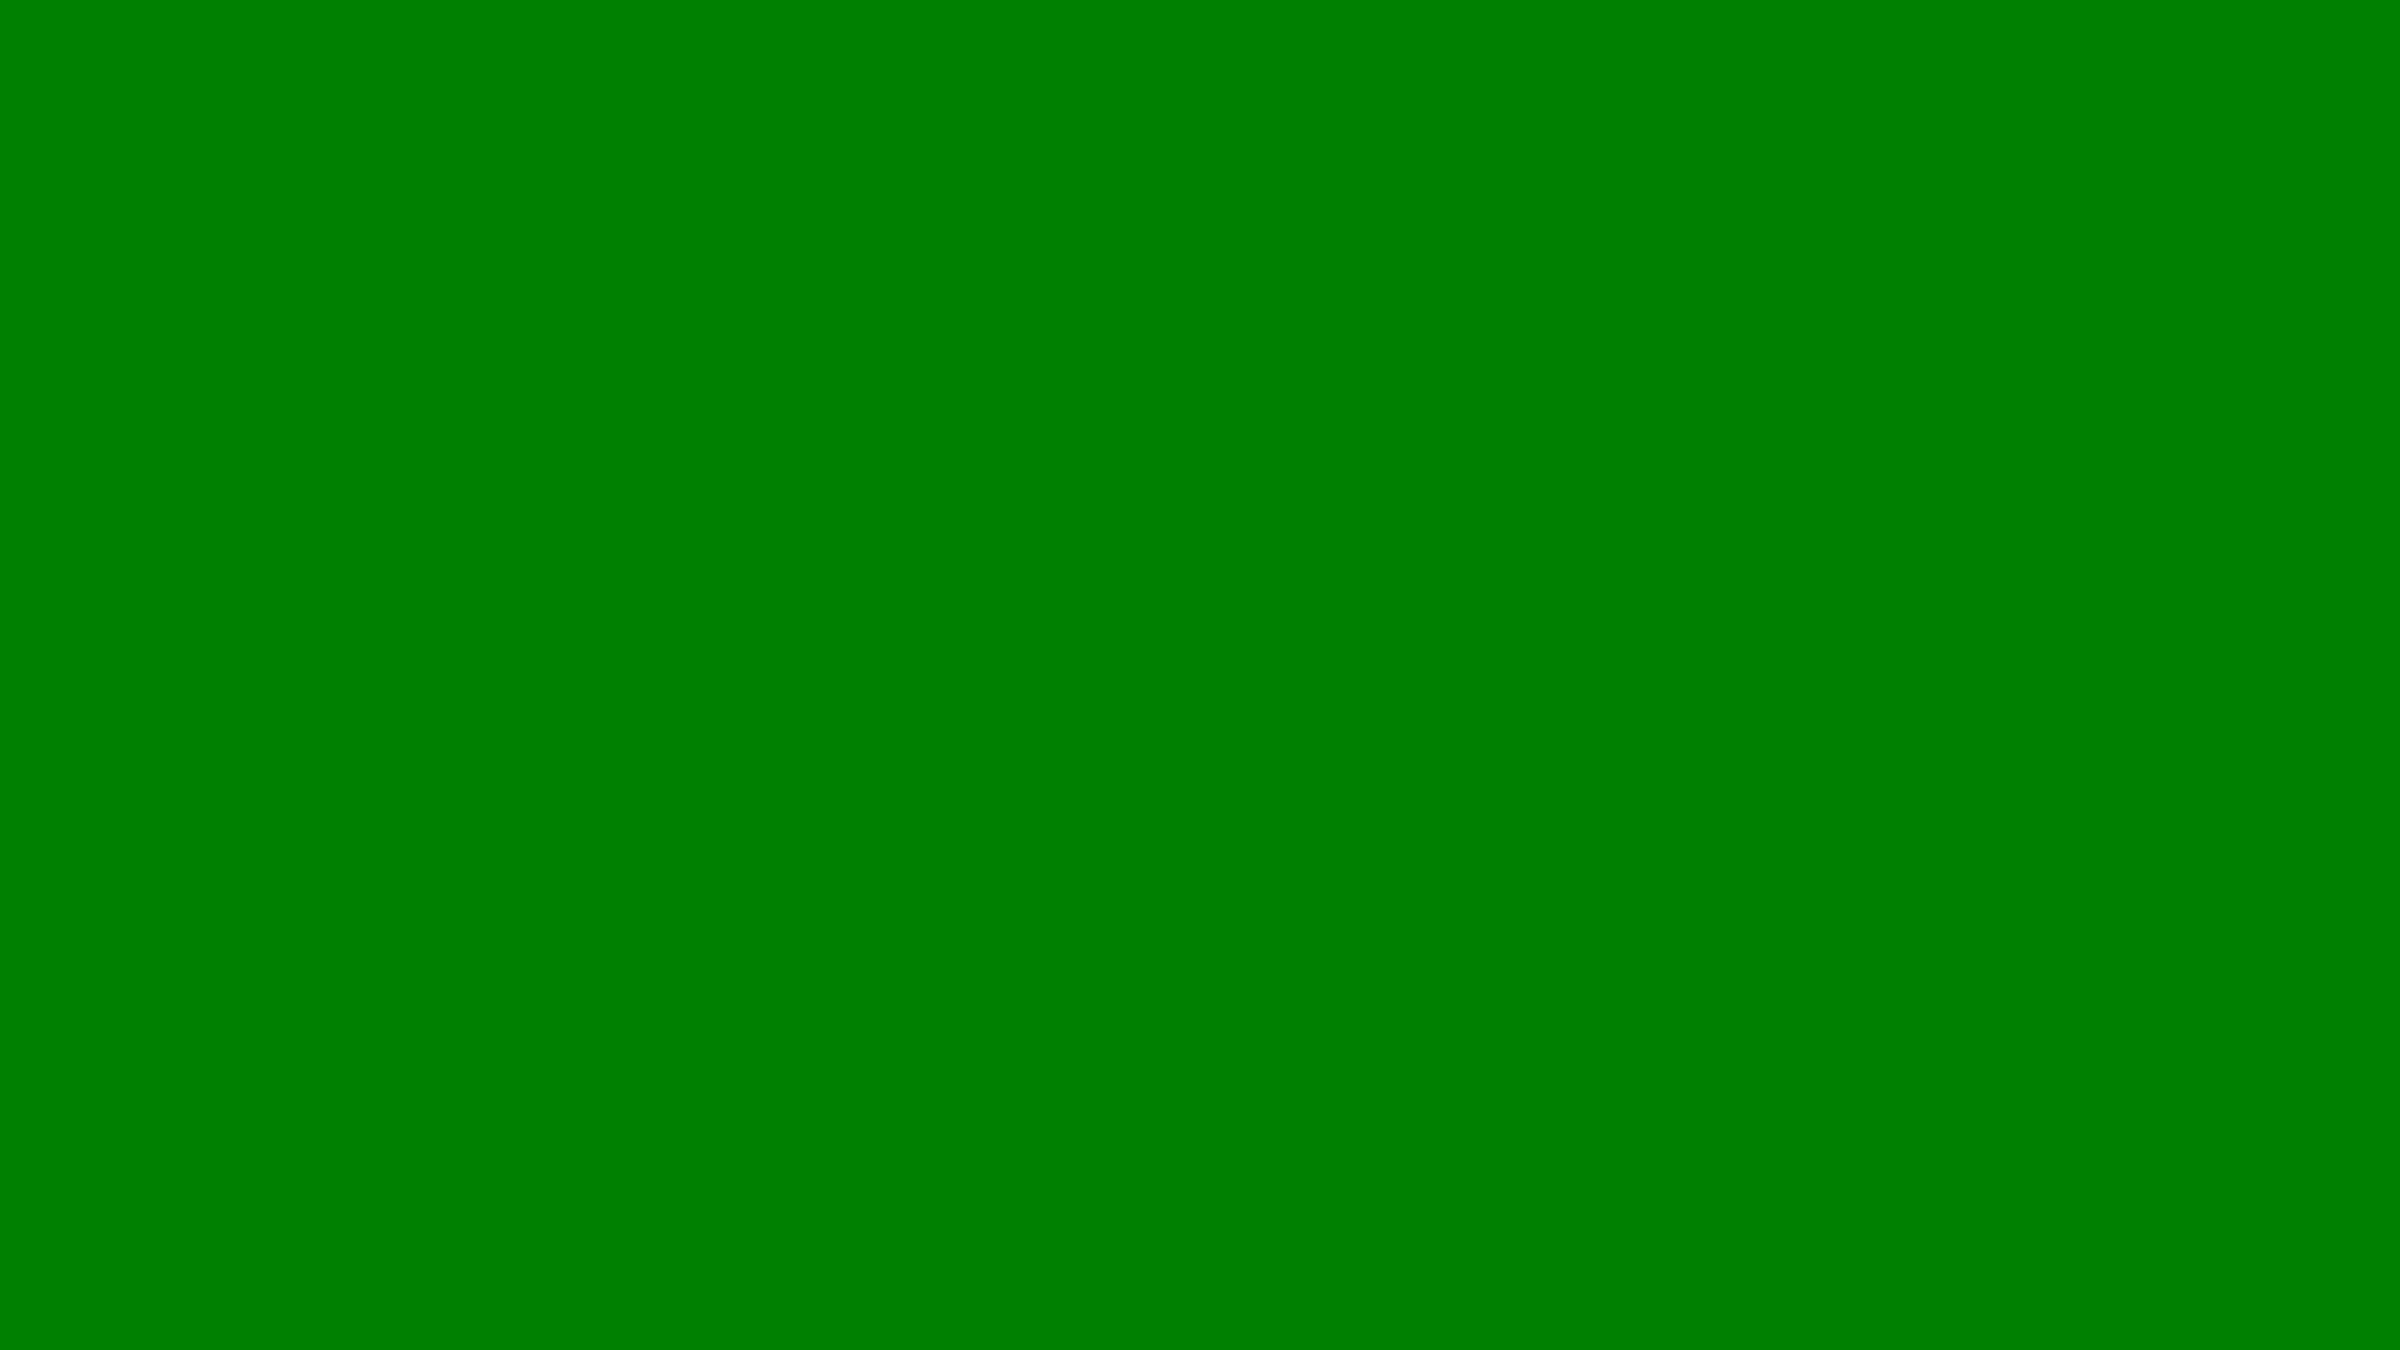 2400x1350 Green Screen Background Clipart.